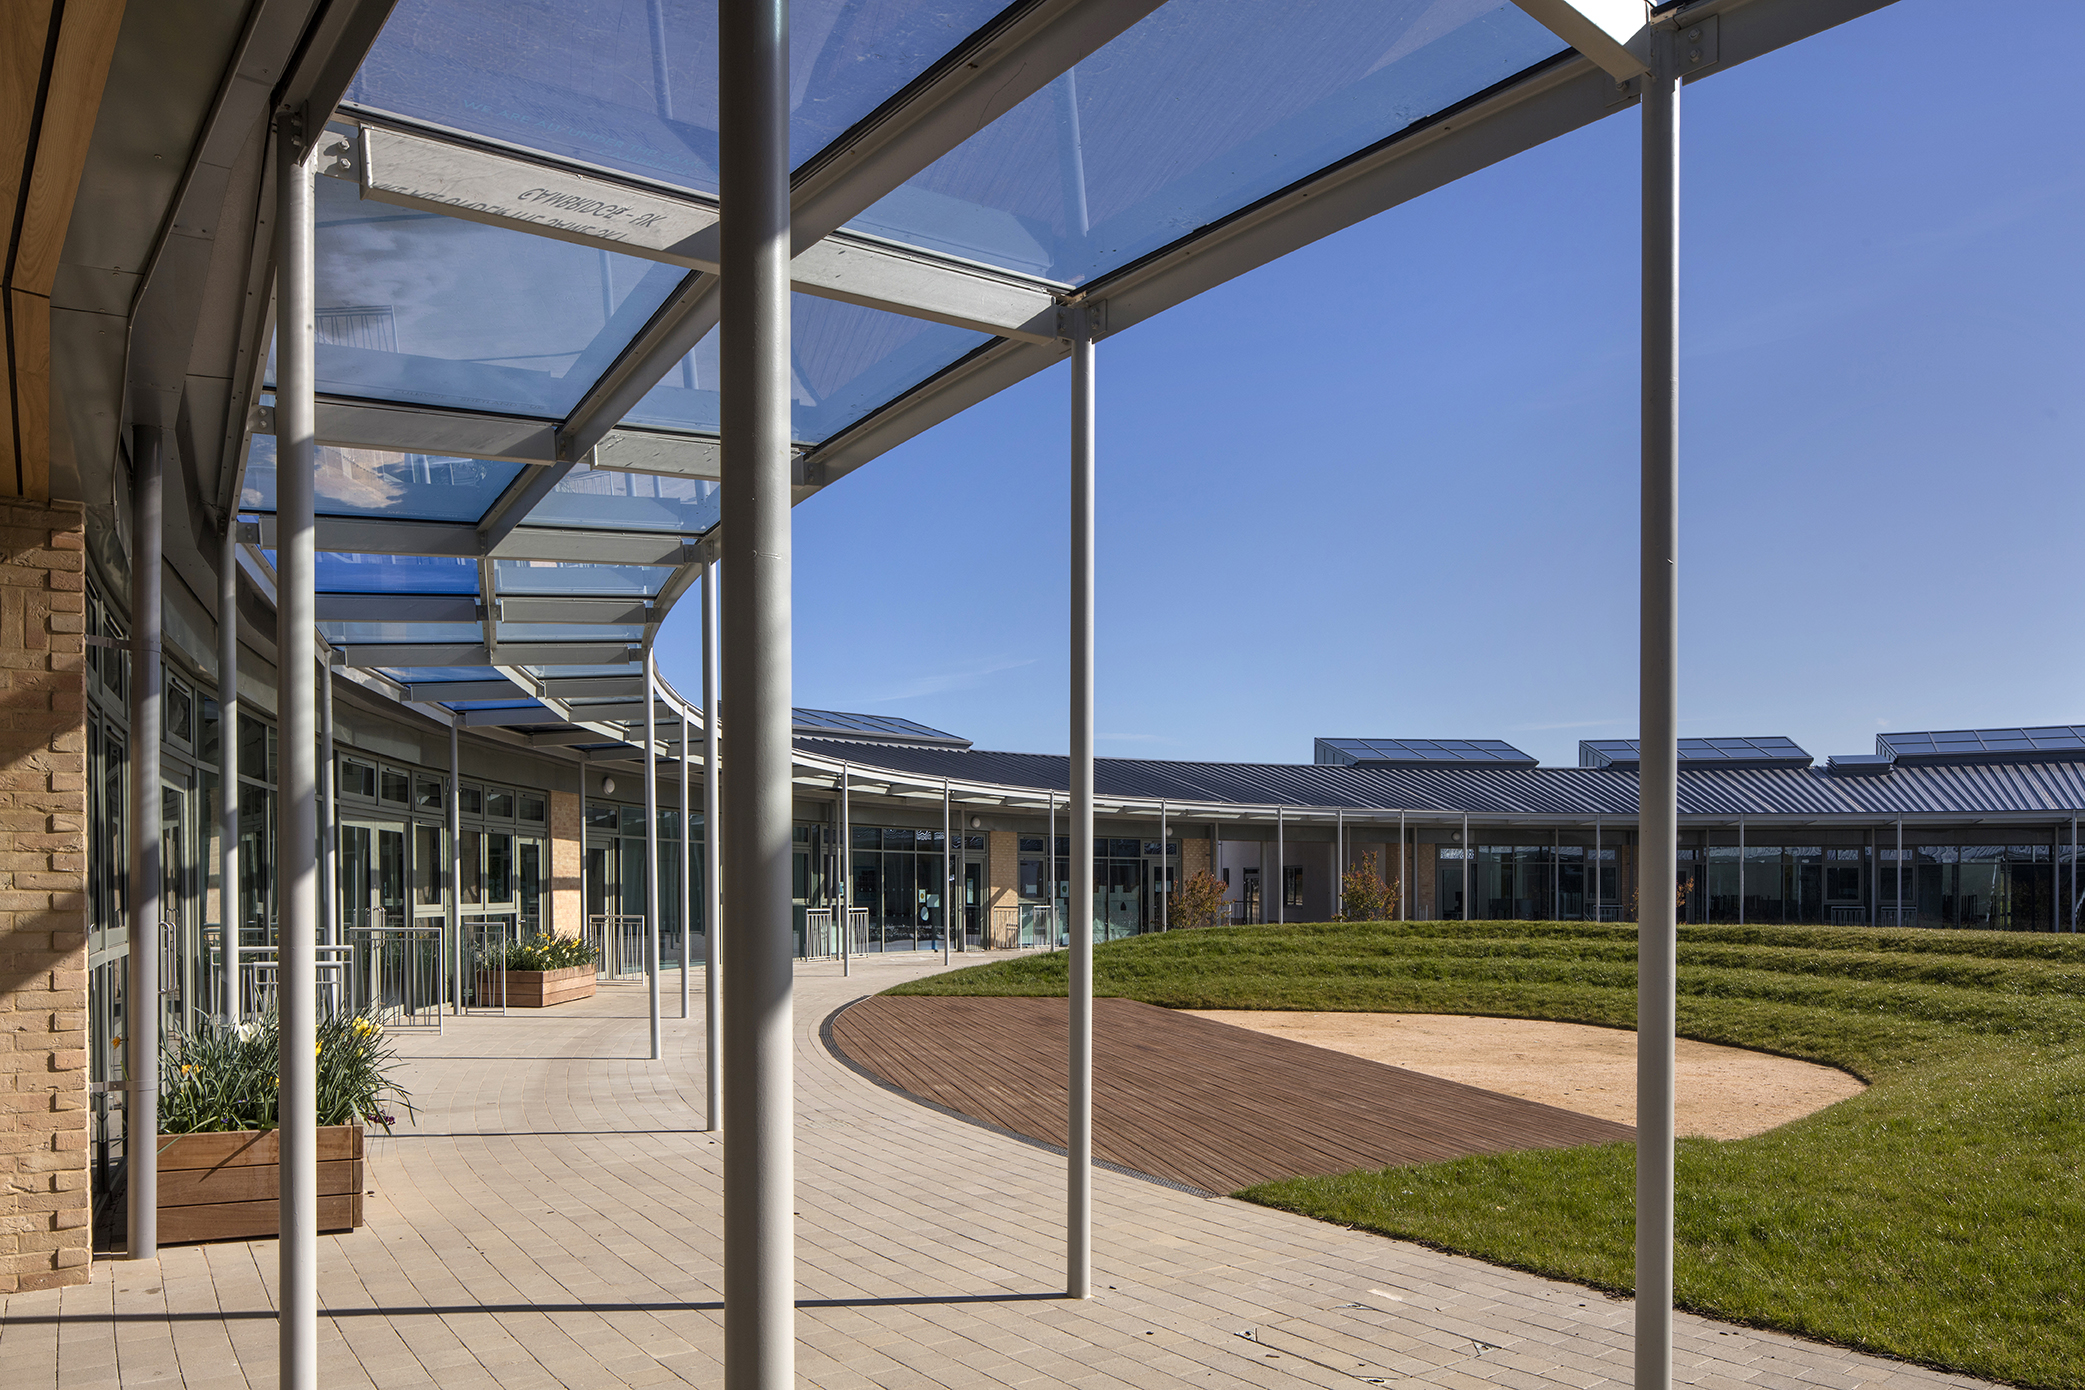 courtyard - University of Cambridge Primary School by Marks Barfield Architects